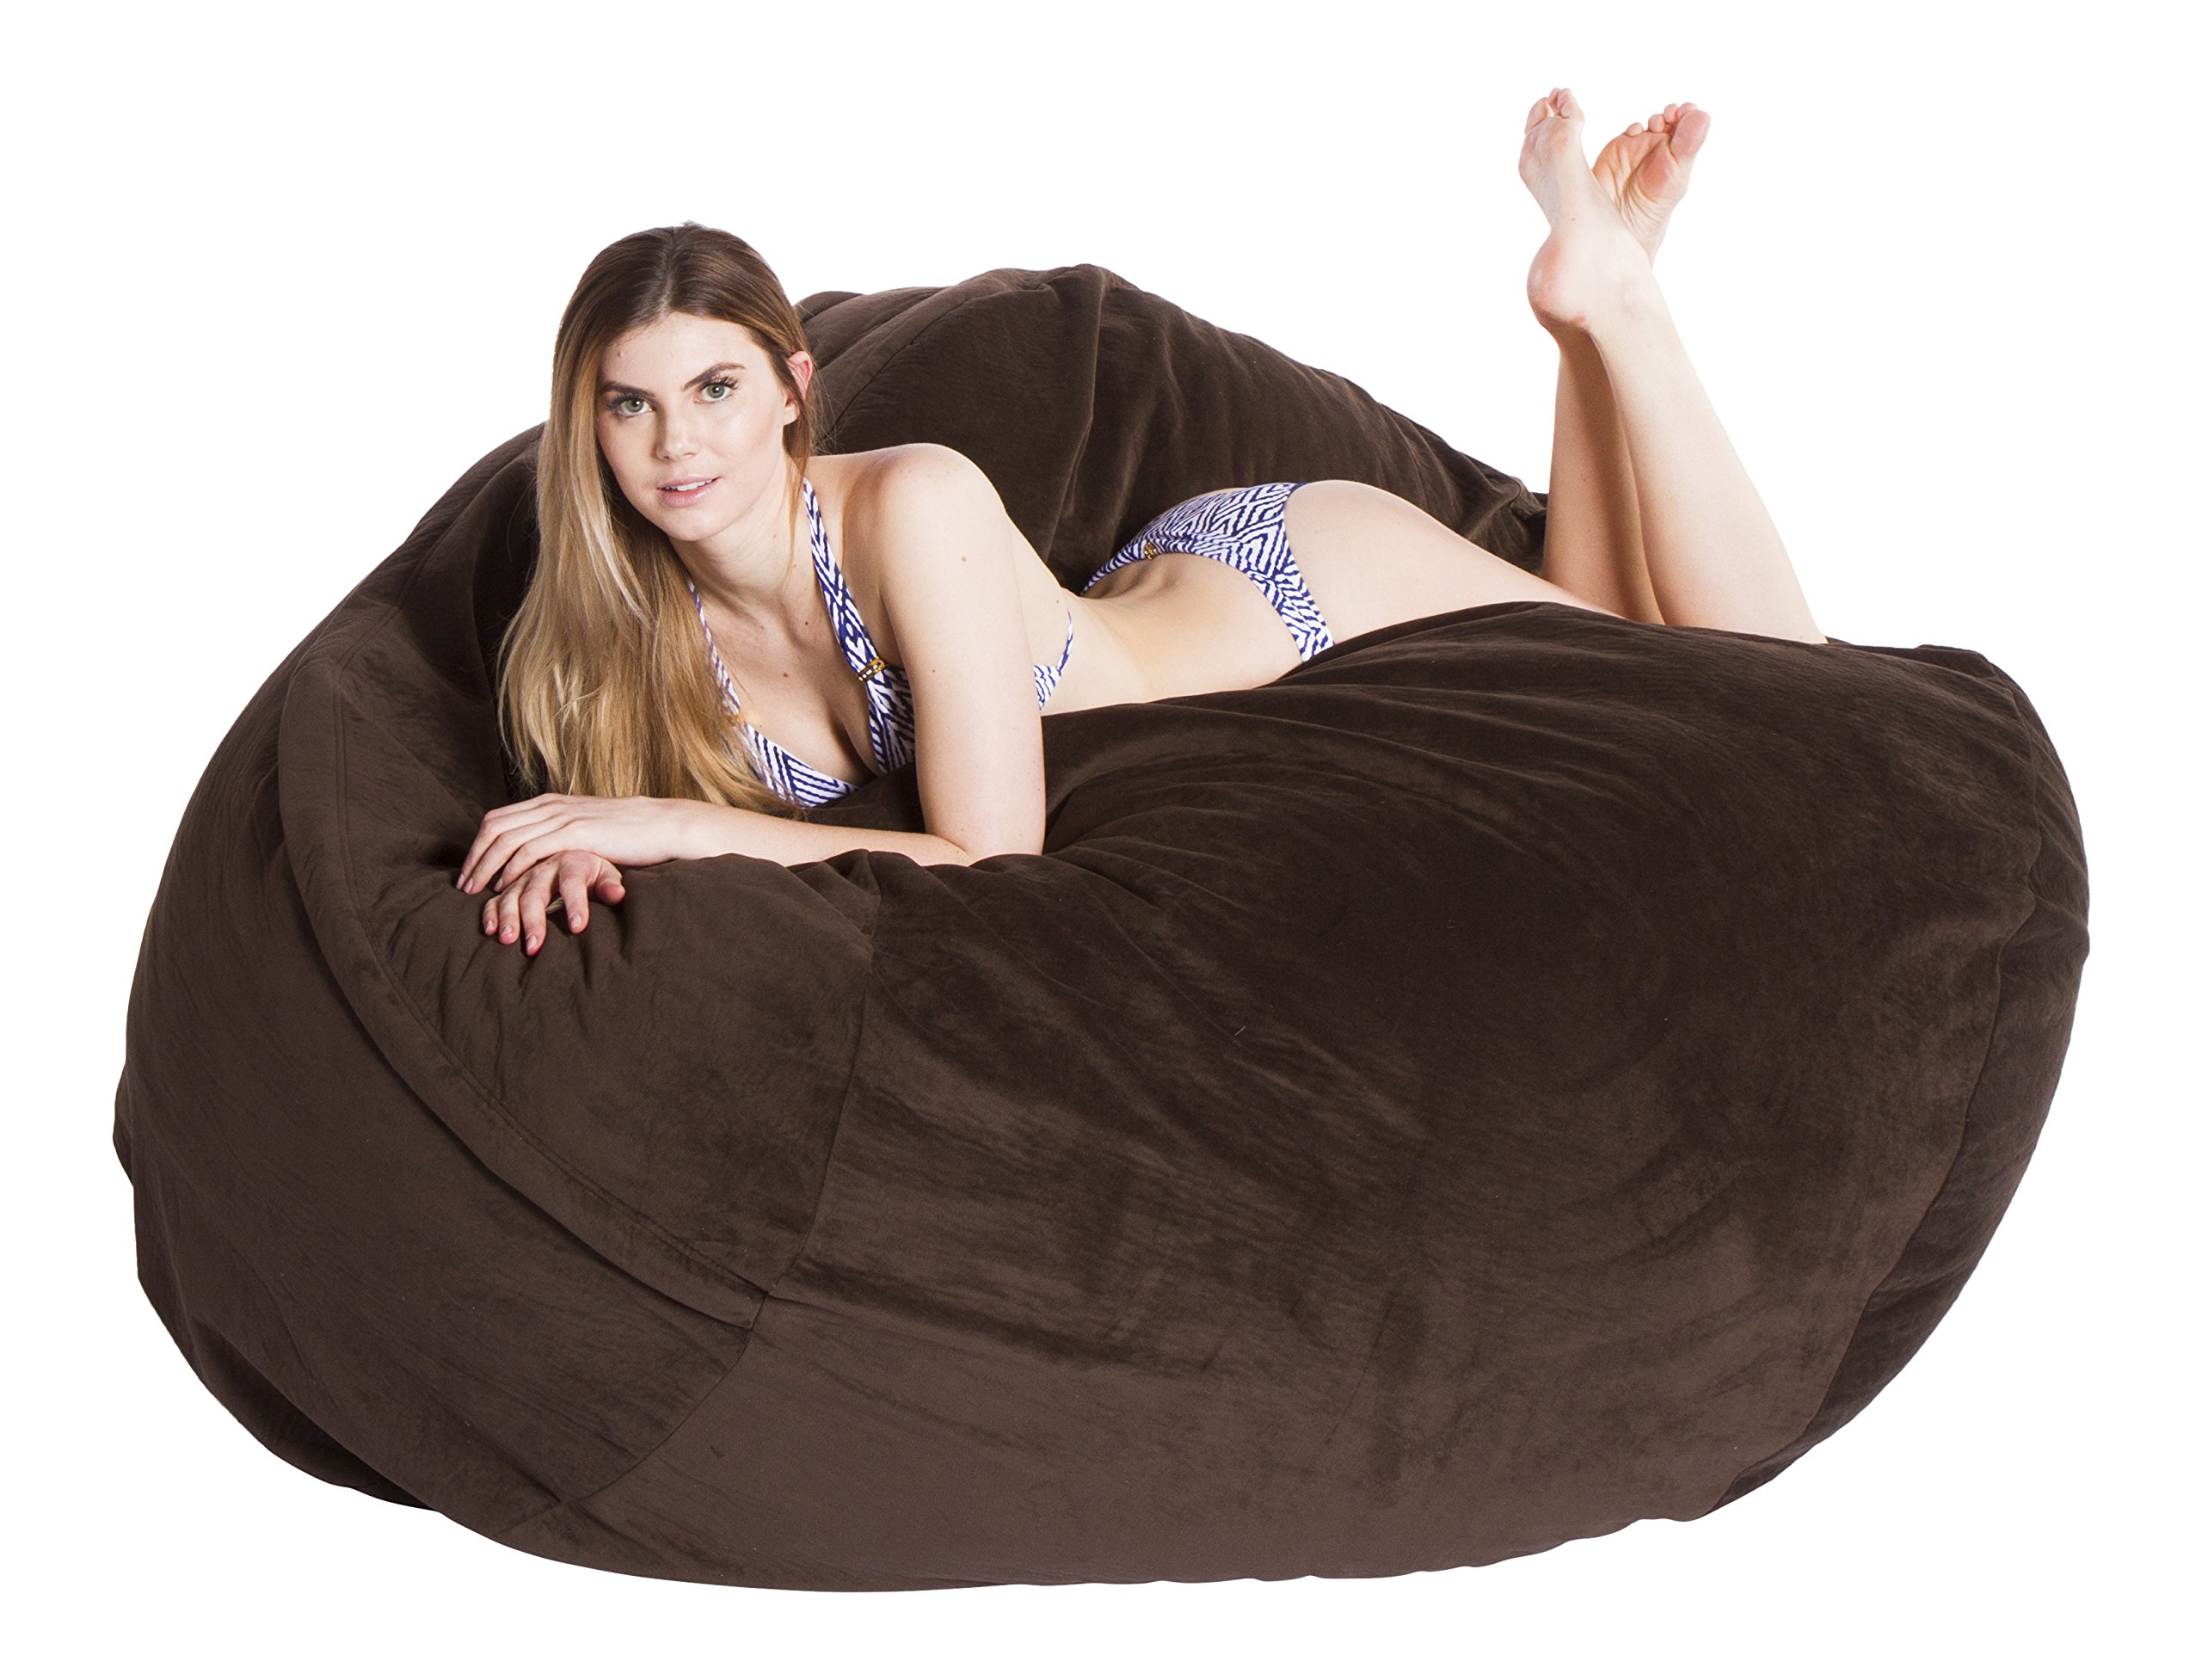 Comfortsacs Bean Bag Chairs Premium Foam-Filled Lounge Sac